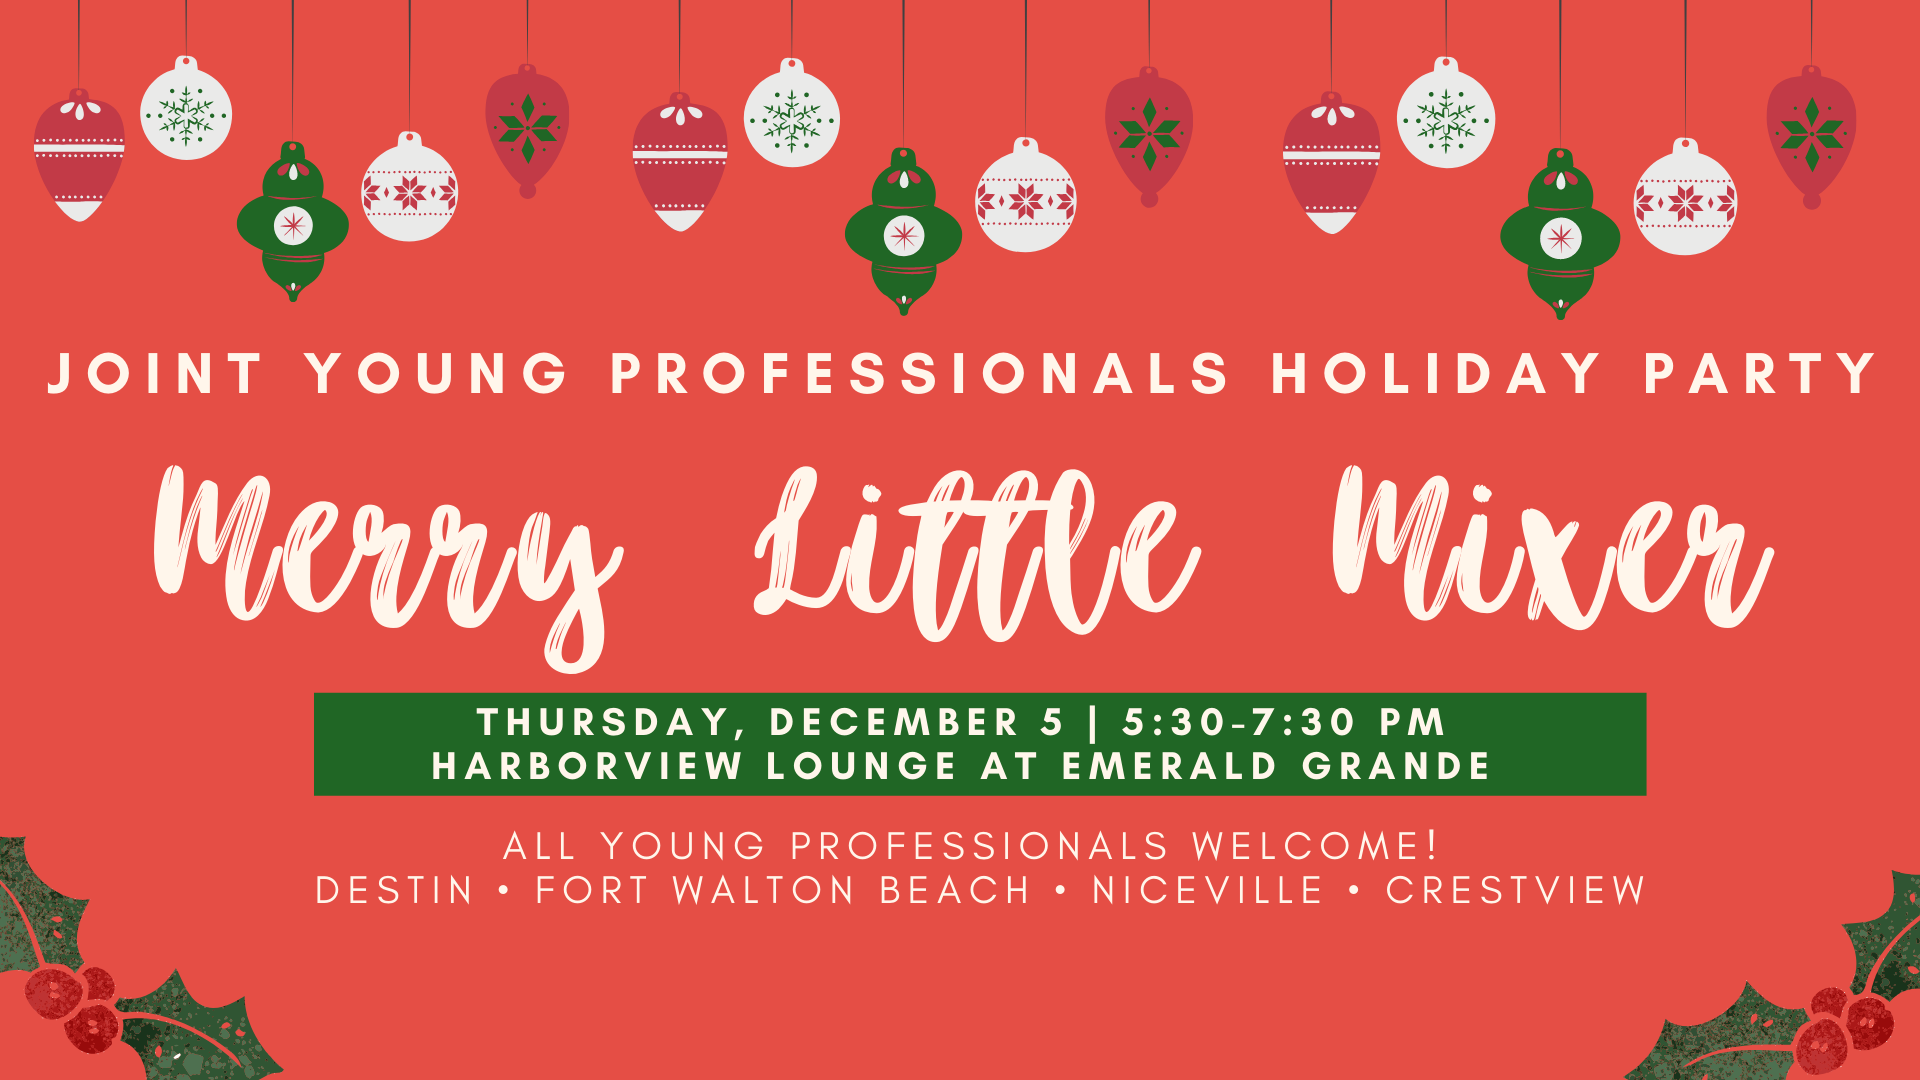 Joint Young Professionals Holiday Party